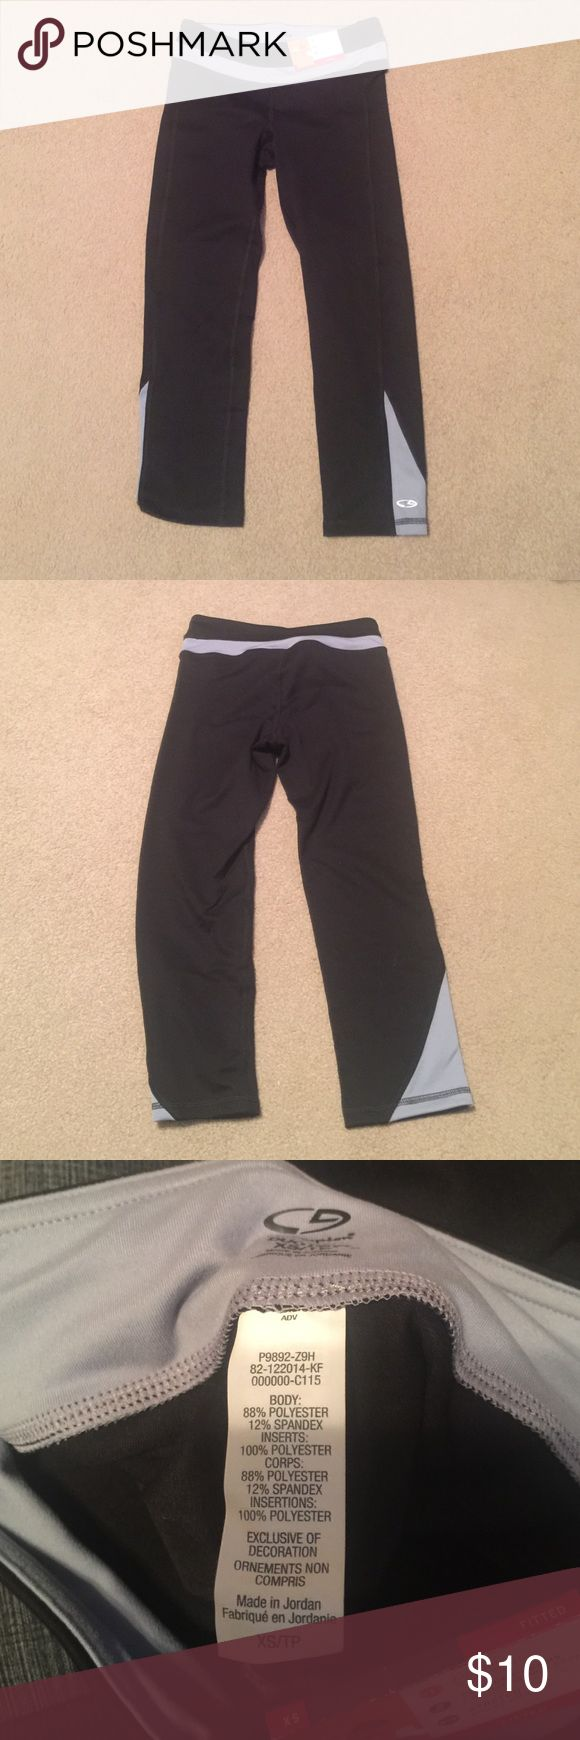 Brand new Champion workout Capris XS Fitted Never worn, black with gray fitted Capri workout pants. Size Xs Champion Pants Capris